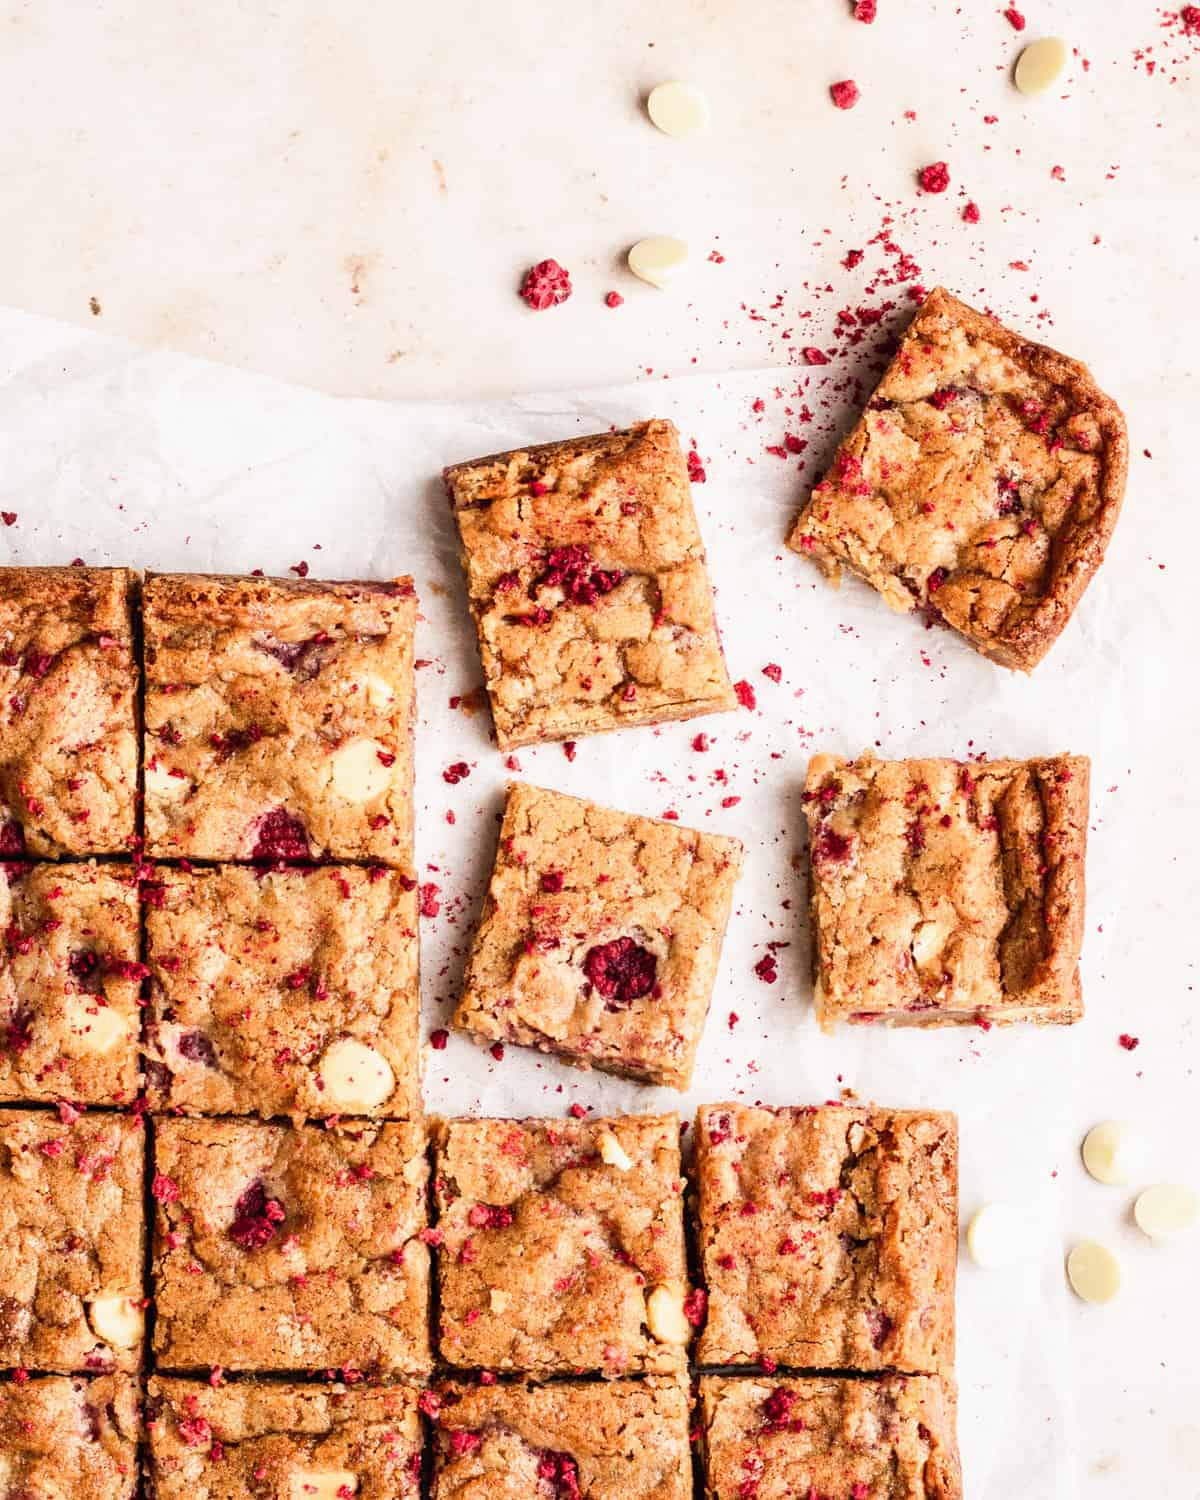 raspberry white chocolate blondies cut into squares and dusted with freeze-dried raspberries